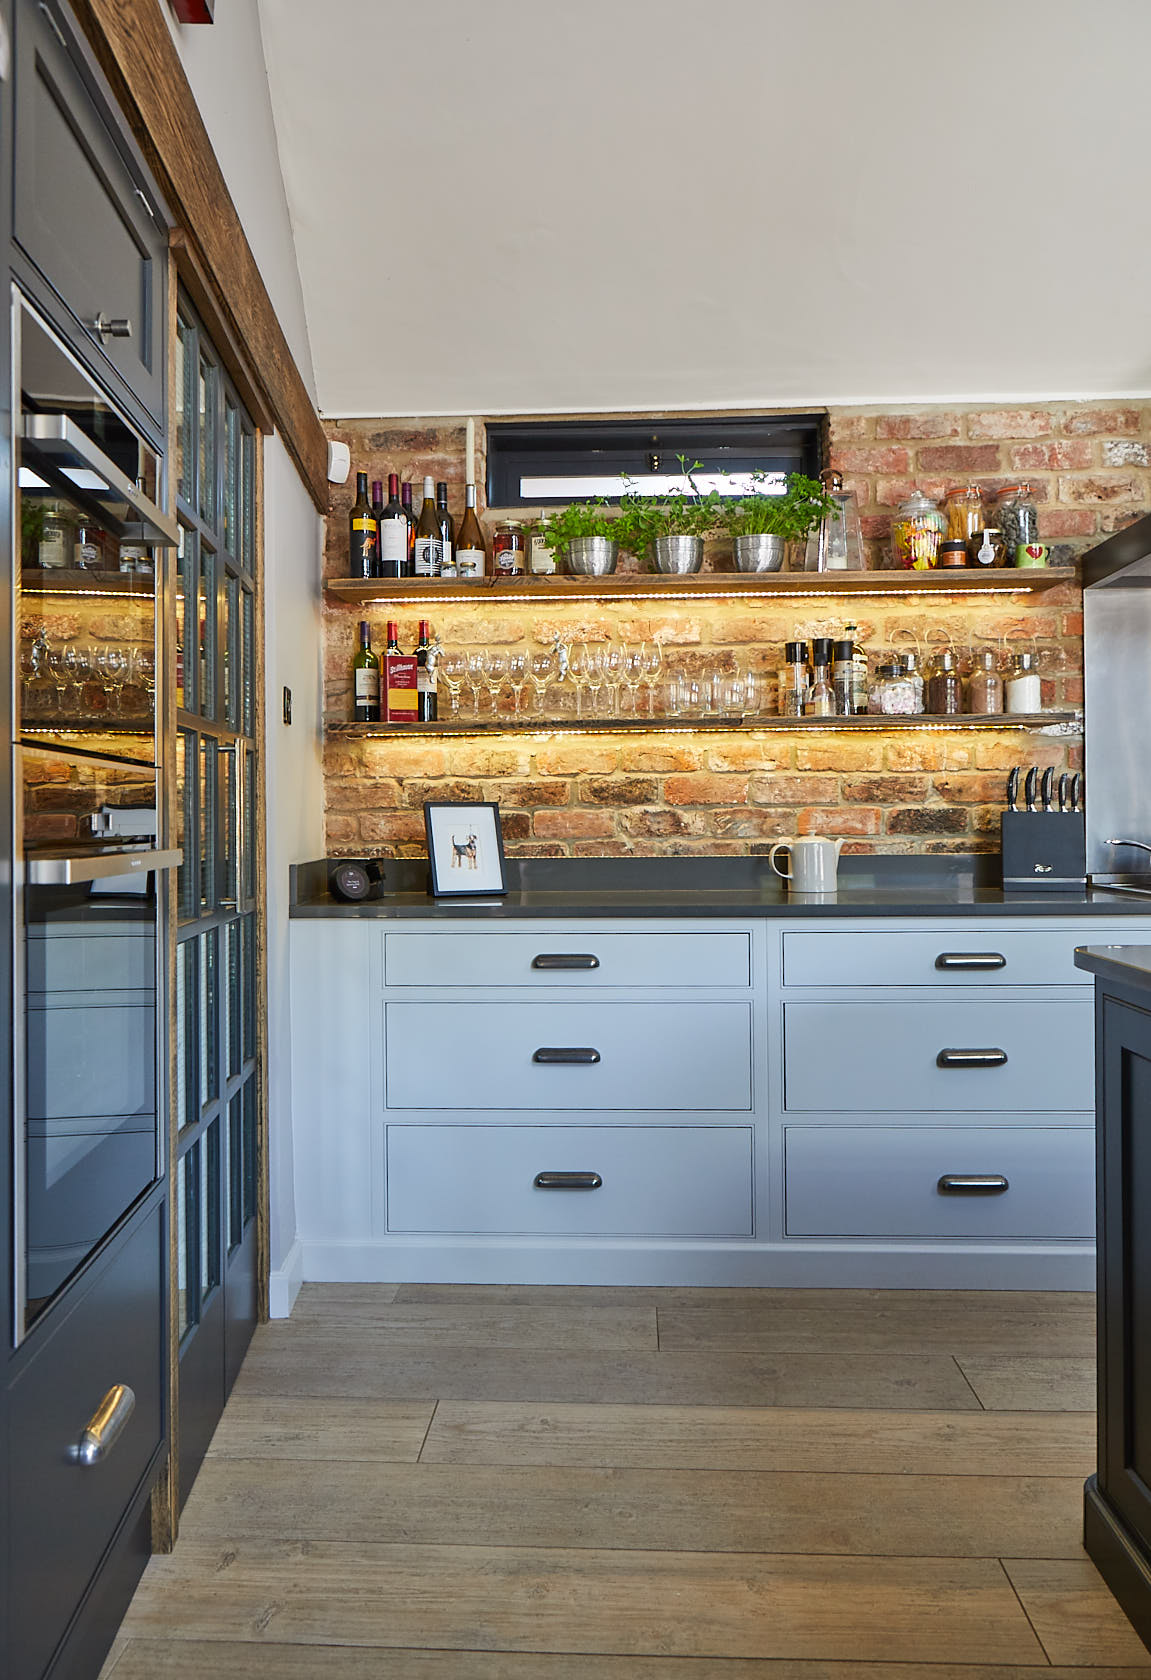 Light grey pan drawers below exposed brick wall with open rustic oak shelves above